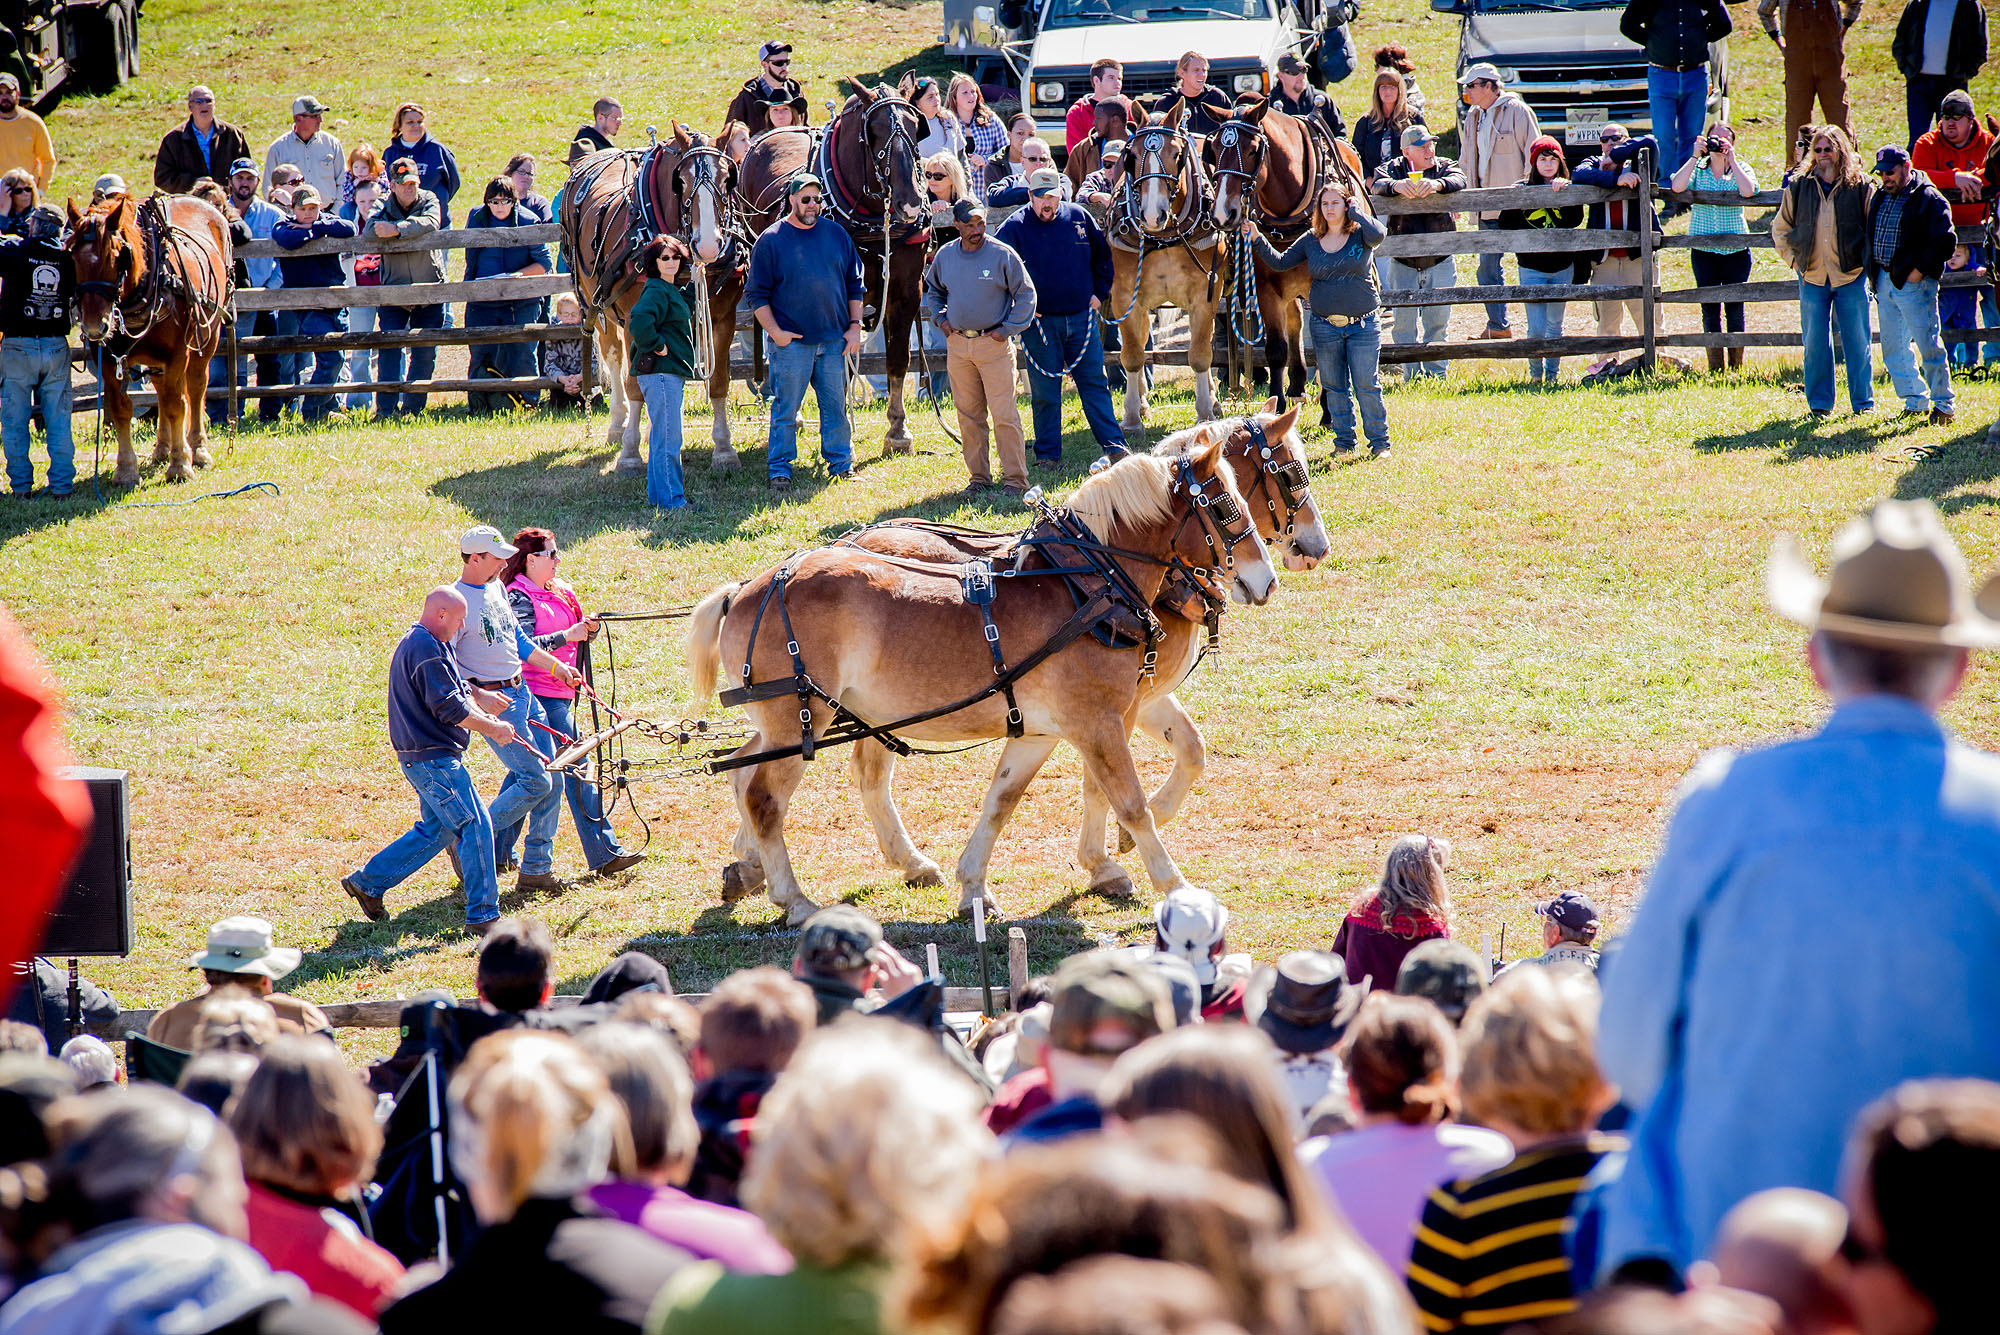 Caption: Draft horse demonstrations at the Blue Ridge Folklife Festival.  This year's festival takes place on Saturday, October 27th at Ferrum College, Ferrum, VA.  , Credit: Courtesy Blue Ridge Institute